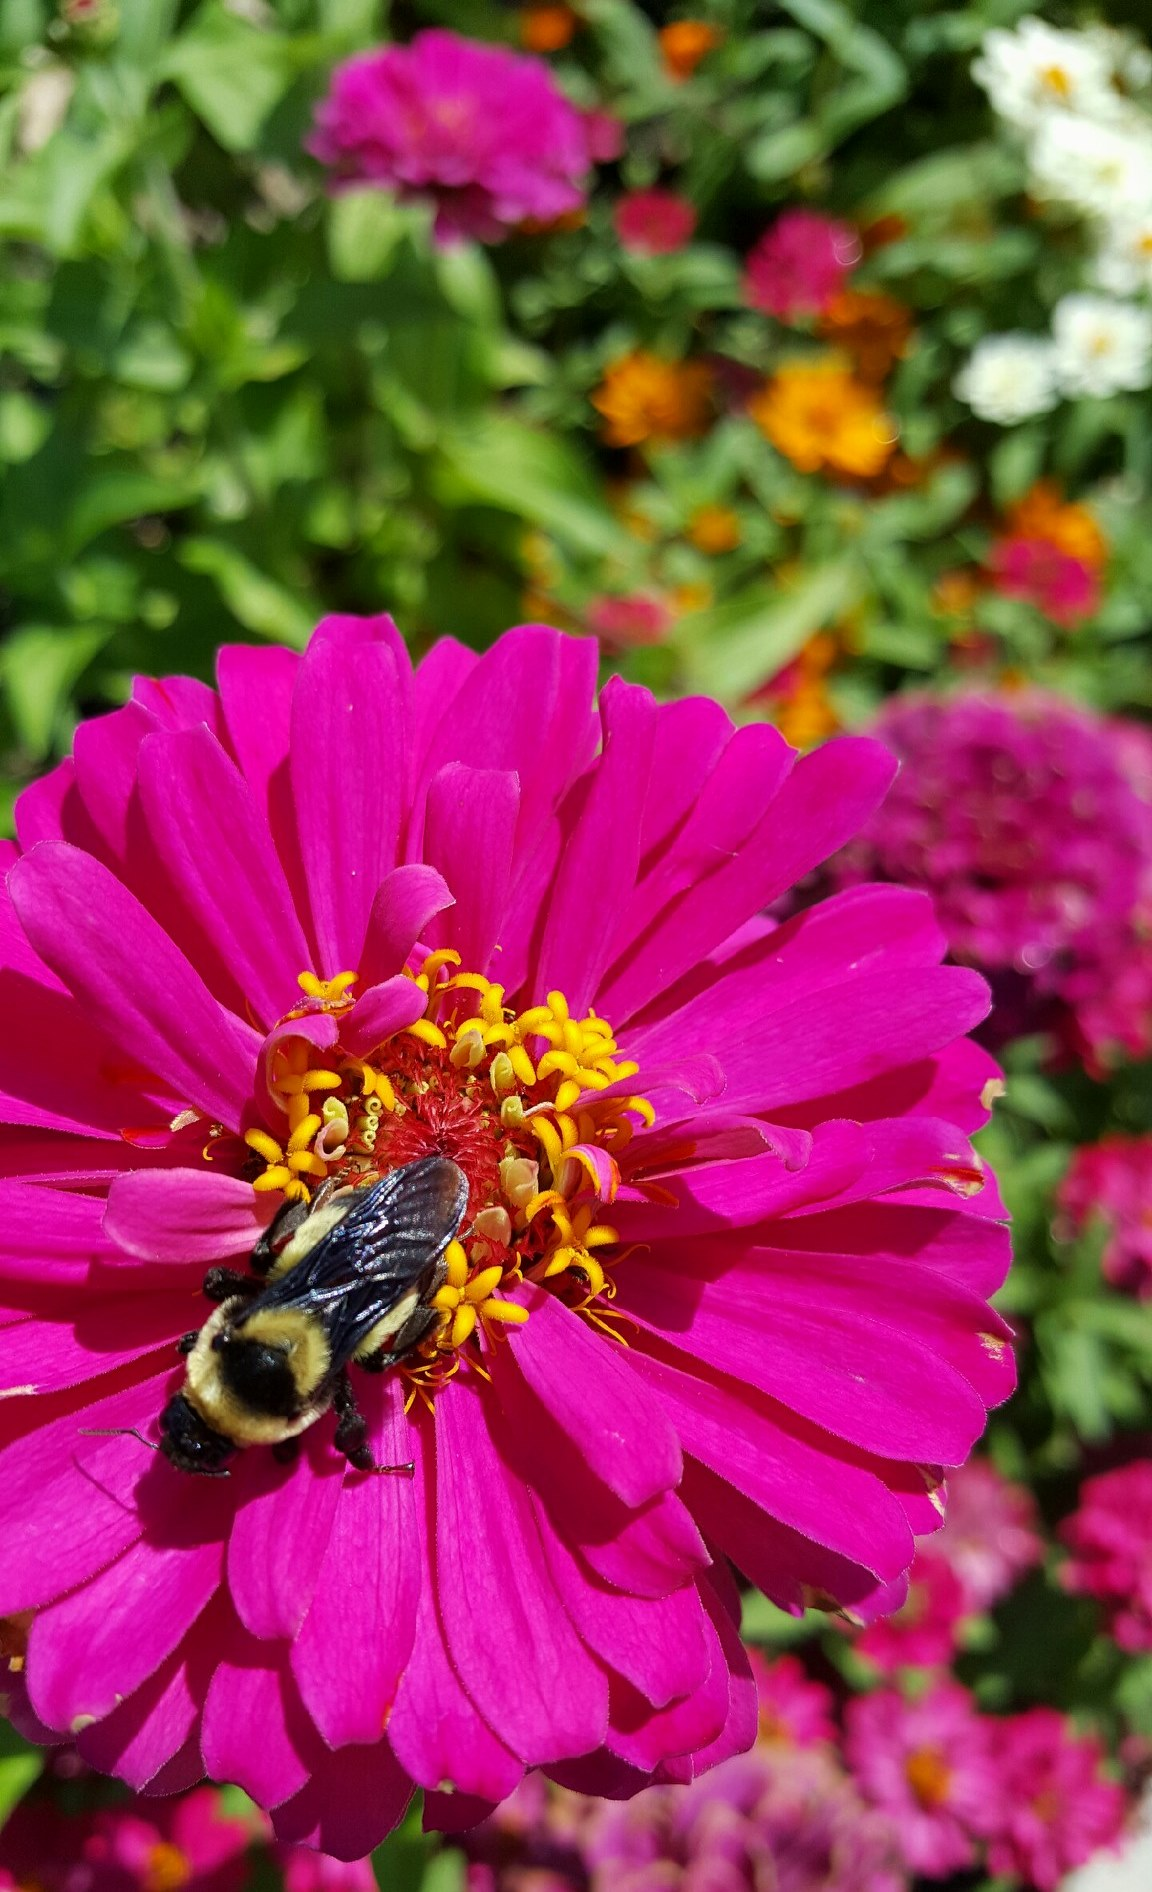 Unlike its shorter cousins, Uproar Rose zinnia will provide a bounty of blossoms all summer. They are large dahlia-like blooms borne on 30-inch stems. And, they also show a good level of powdery mildew resistance when spaced as recommended.